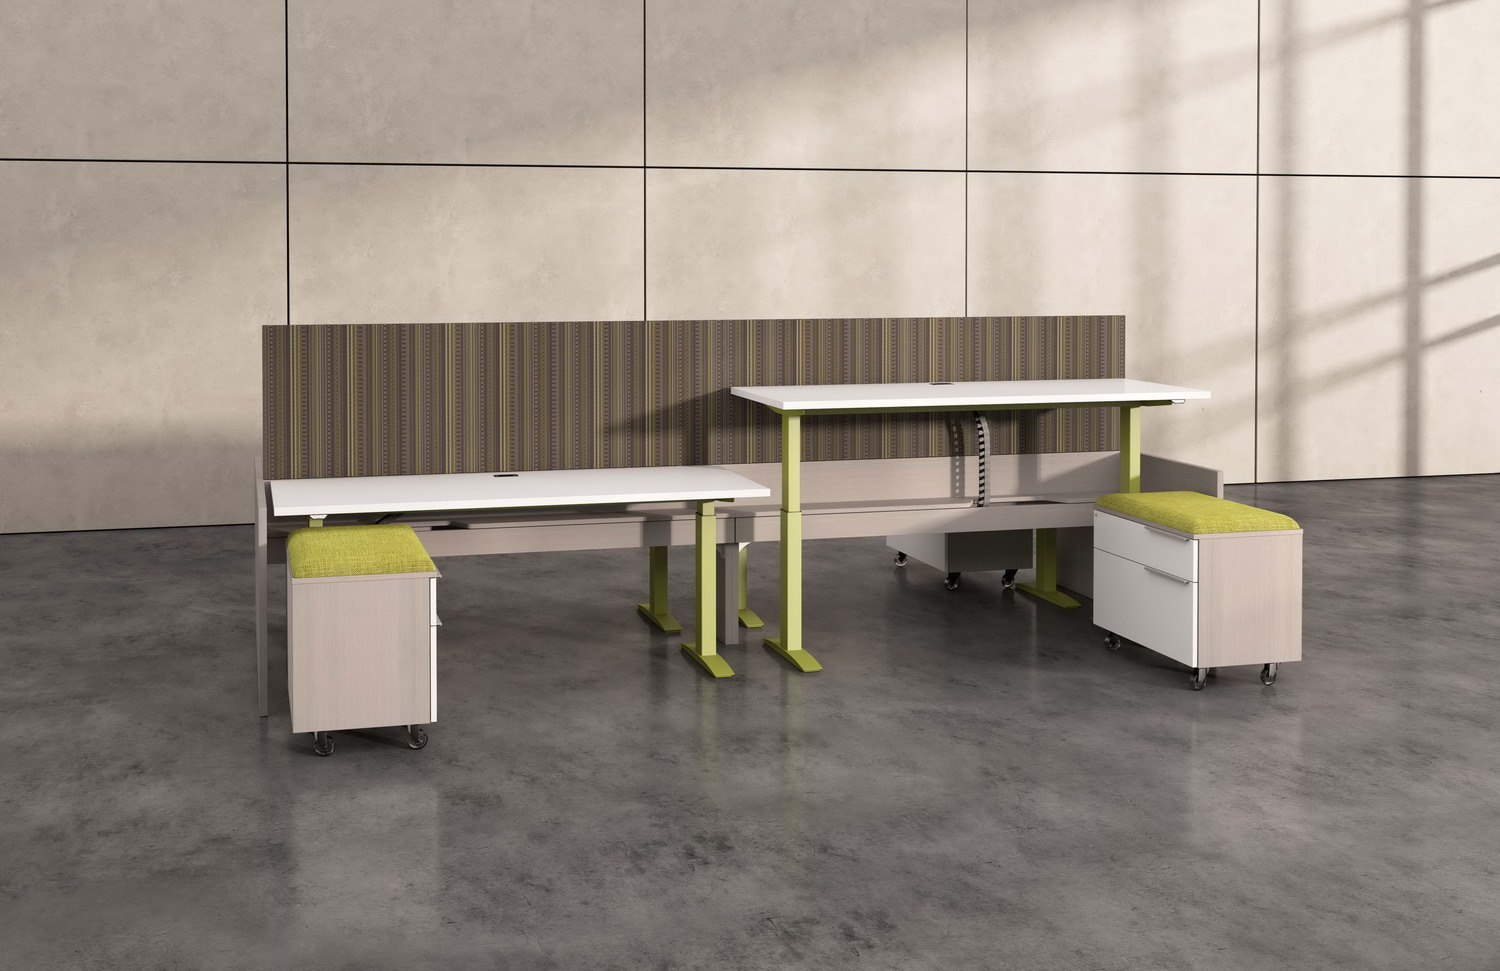 Contract Furniture Rendering of a pair of height adjustable desks side by side.